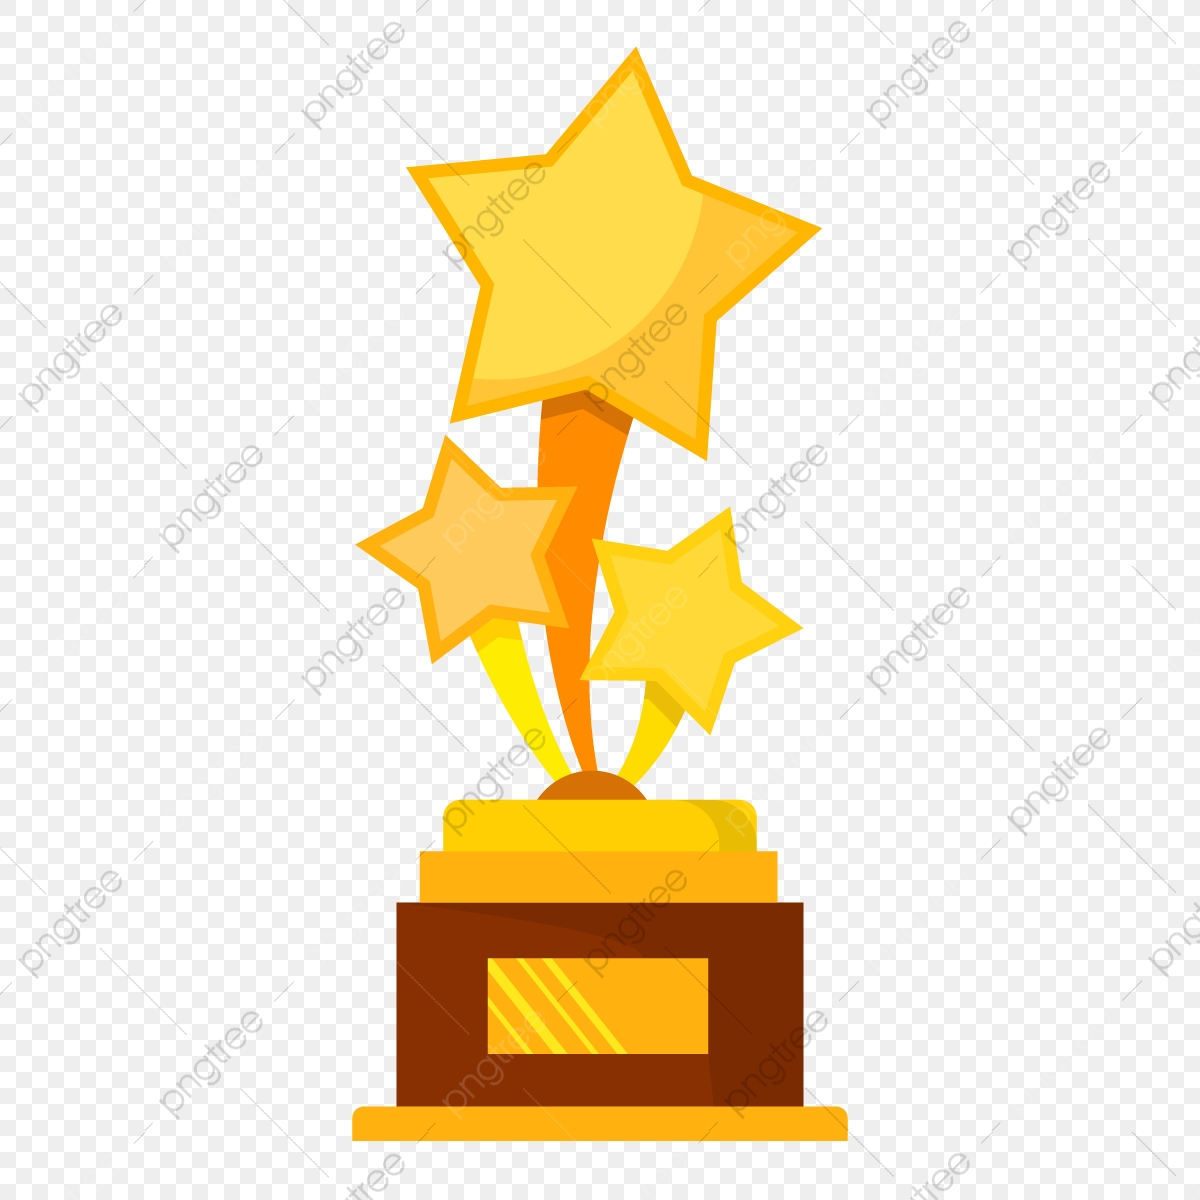 Free Clipart Awards Trophies | Free Images at Clker.com - vector clip art  online, royalty free & public domain